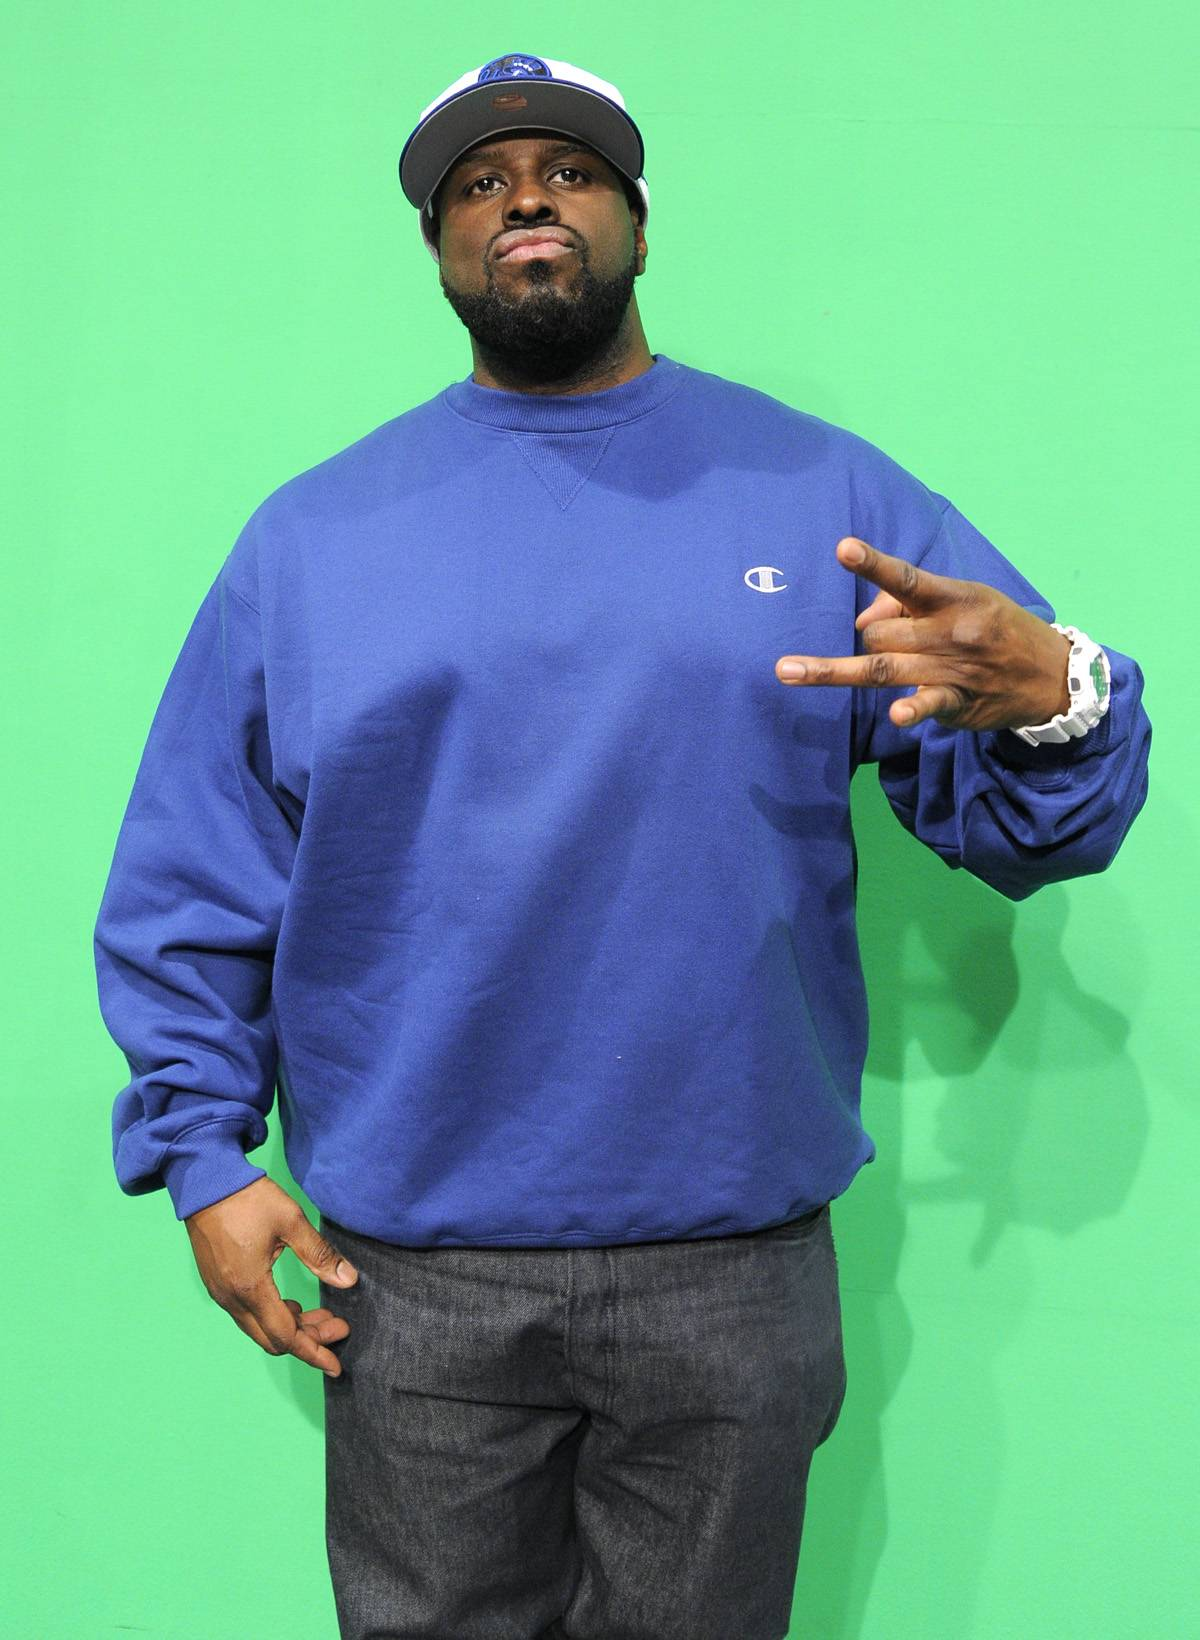 """Funkmaster Flex - Hot 97 DJ Funkmaster Flex defended Jim Joneson the air, criticizing Banks for dropping """"Succubi"""" and ? surprise ? Banks didn't like that too much. """"@funkmasterflex Tell that n***a Jim to defend himself,"""" she tweeted. """"You stay out of it and have yourself a glass of fat free water."""" She went on to call Flex an """"old dusty fat f**k"""" and """"a butch queen"""" and denied his request that she call in to the station so the two could talk it out.""""@funkmasterflex You can call my p***y,"""" she wrote.(Photo: John Ricard)"""